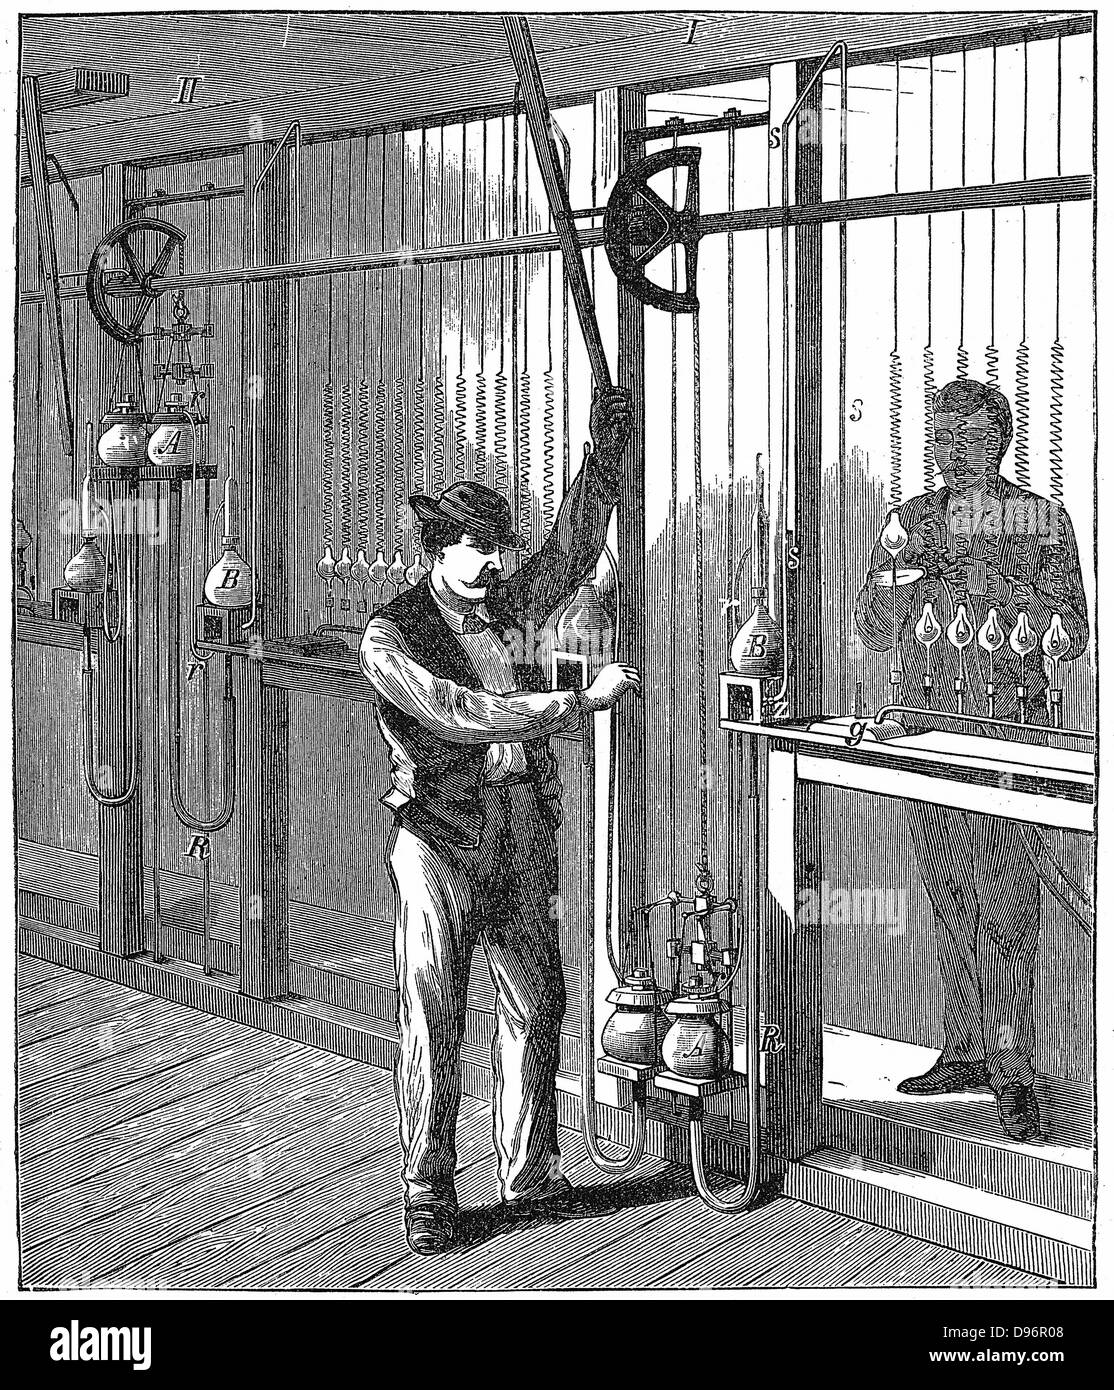 Vacuum Pump Stock Photos Images Alamy Alternatives Wiring Diagram 0 Mercury Being Used To Evacuate Exhaust Light Bulbs On Commercial Scale C1883